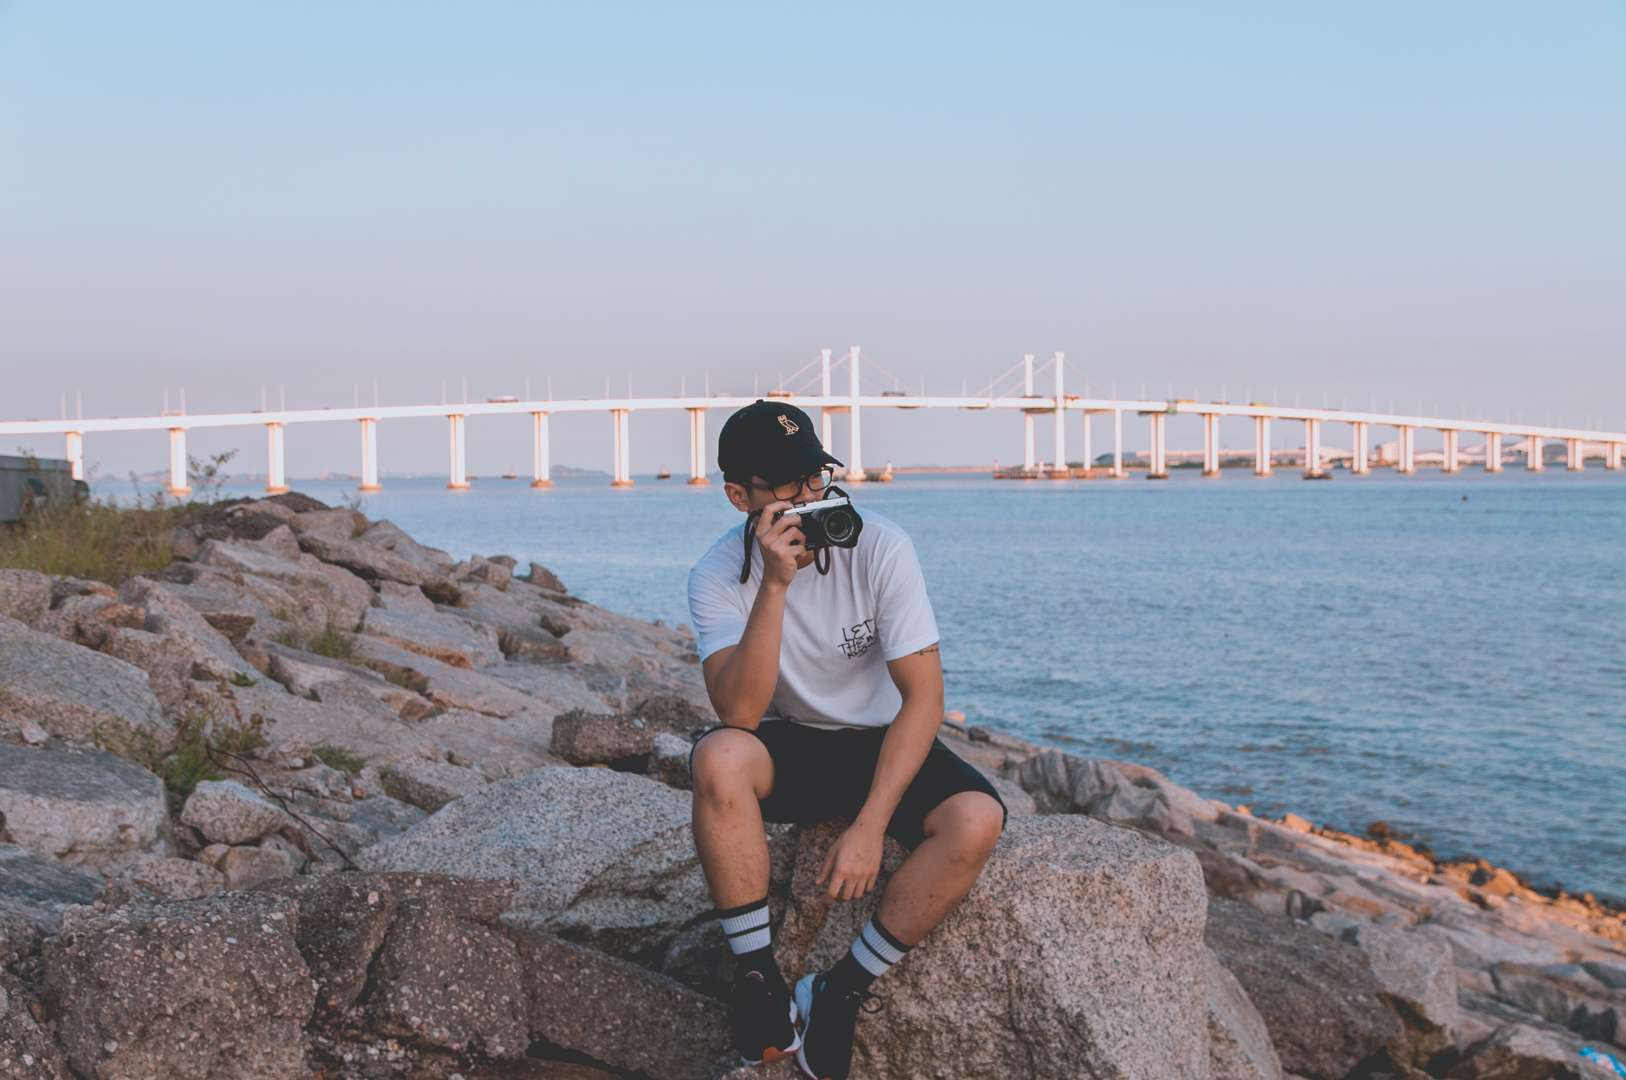 Lance Relucio sits on rocks near the water with Taipa bridge in the background.